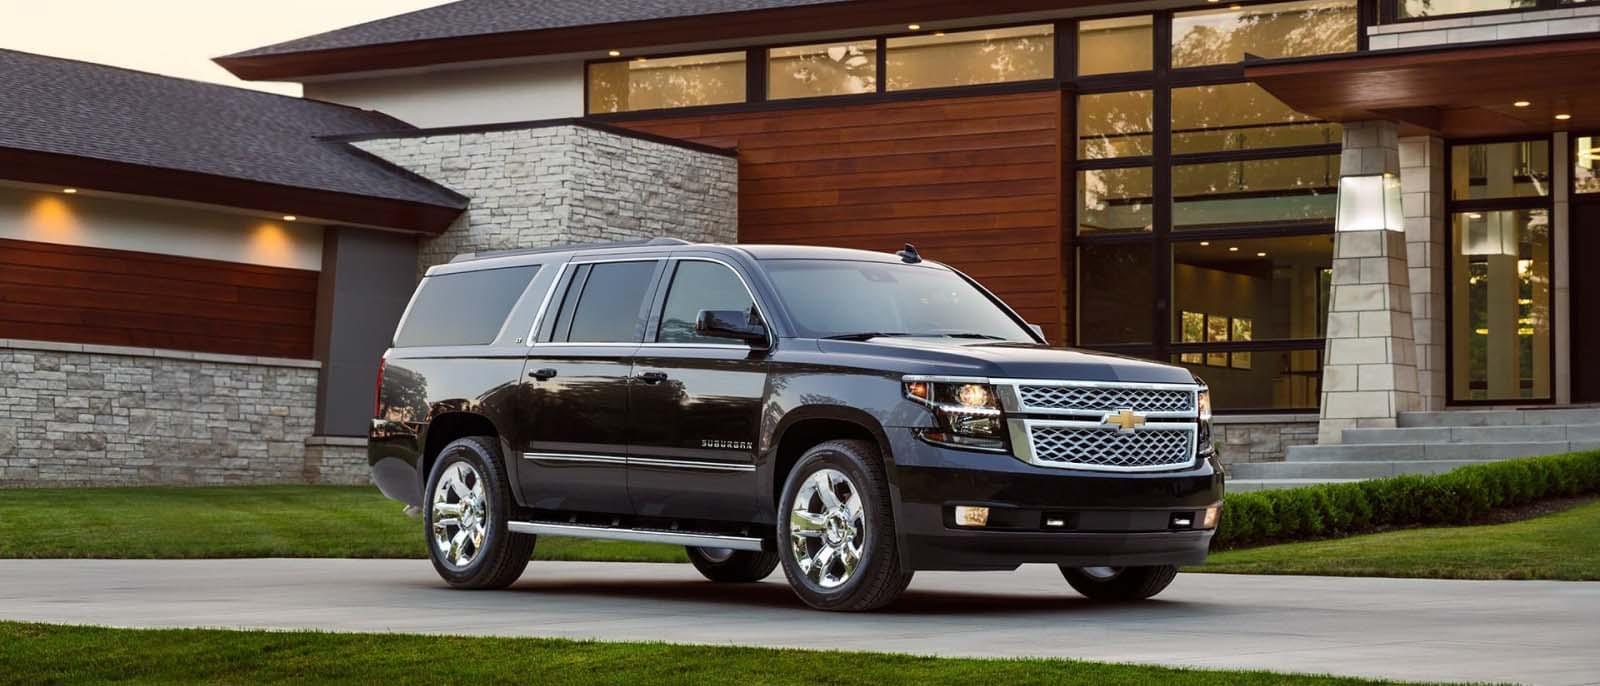 2017 Chevy Suburban Parked